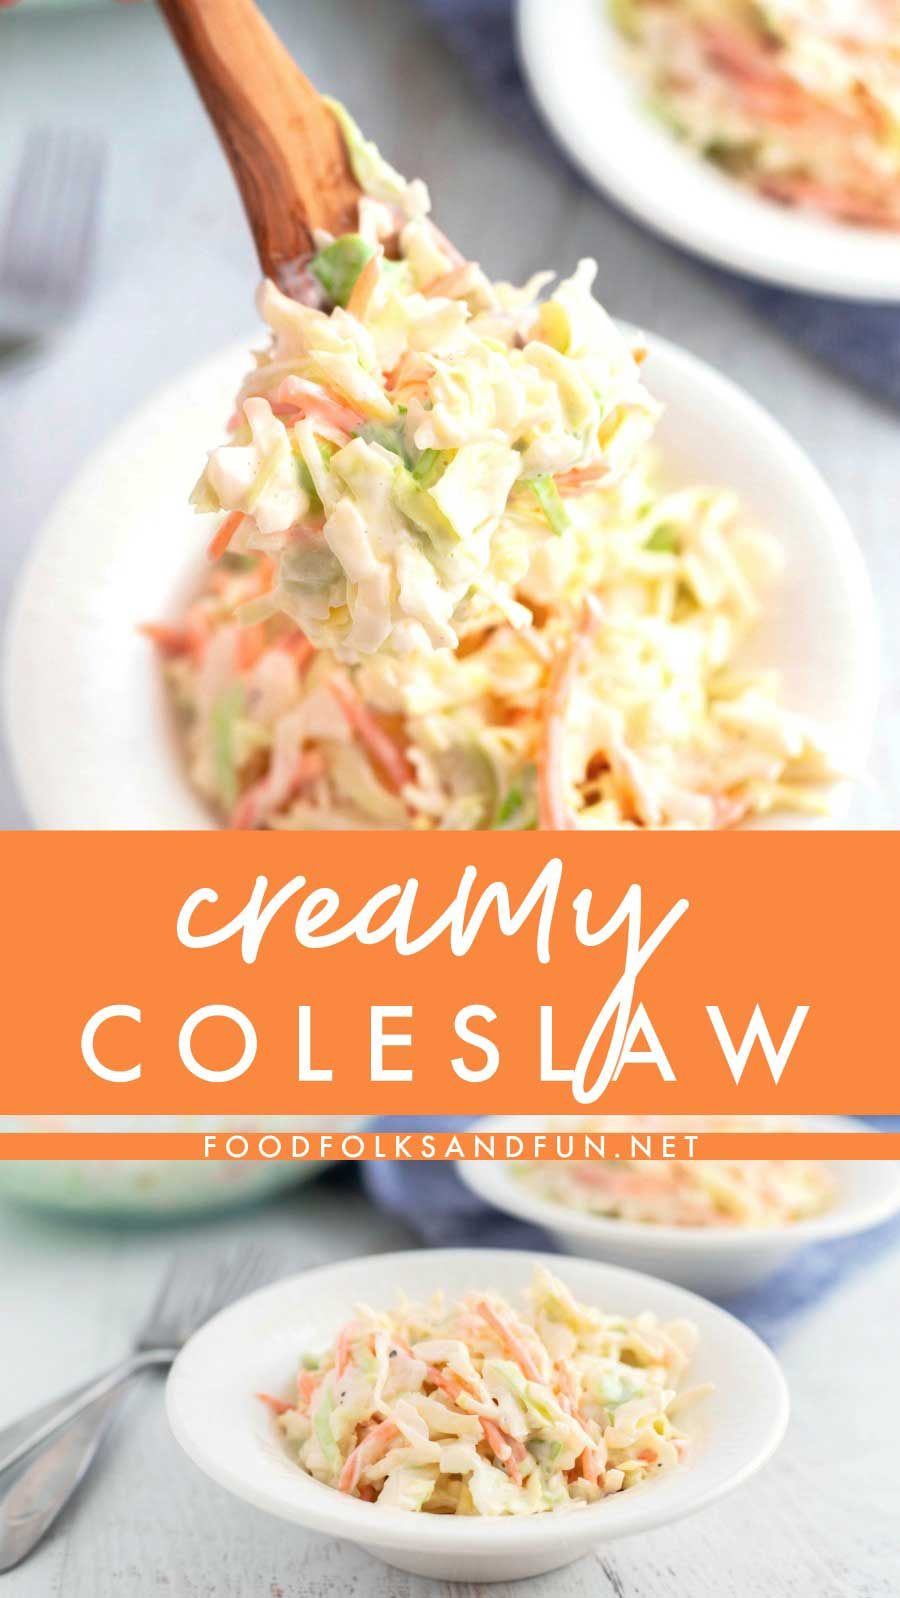 Whether you say coleslaw, cole slaw, or cold slaw, this coleslaw recipe is creamy, delicious, and so easy to make. This homemade coleslaw is the perfect side dish for cookouts, parties, and potlucks. via @foodfolksandfun